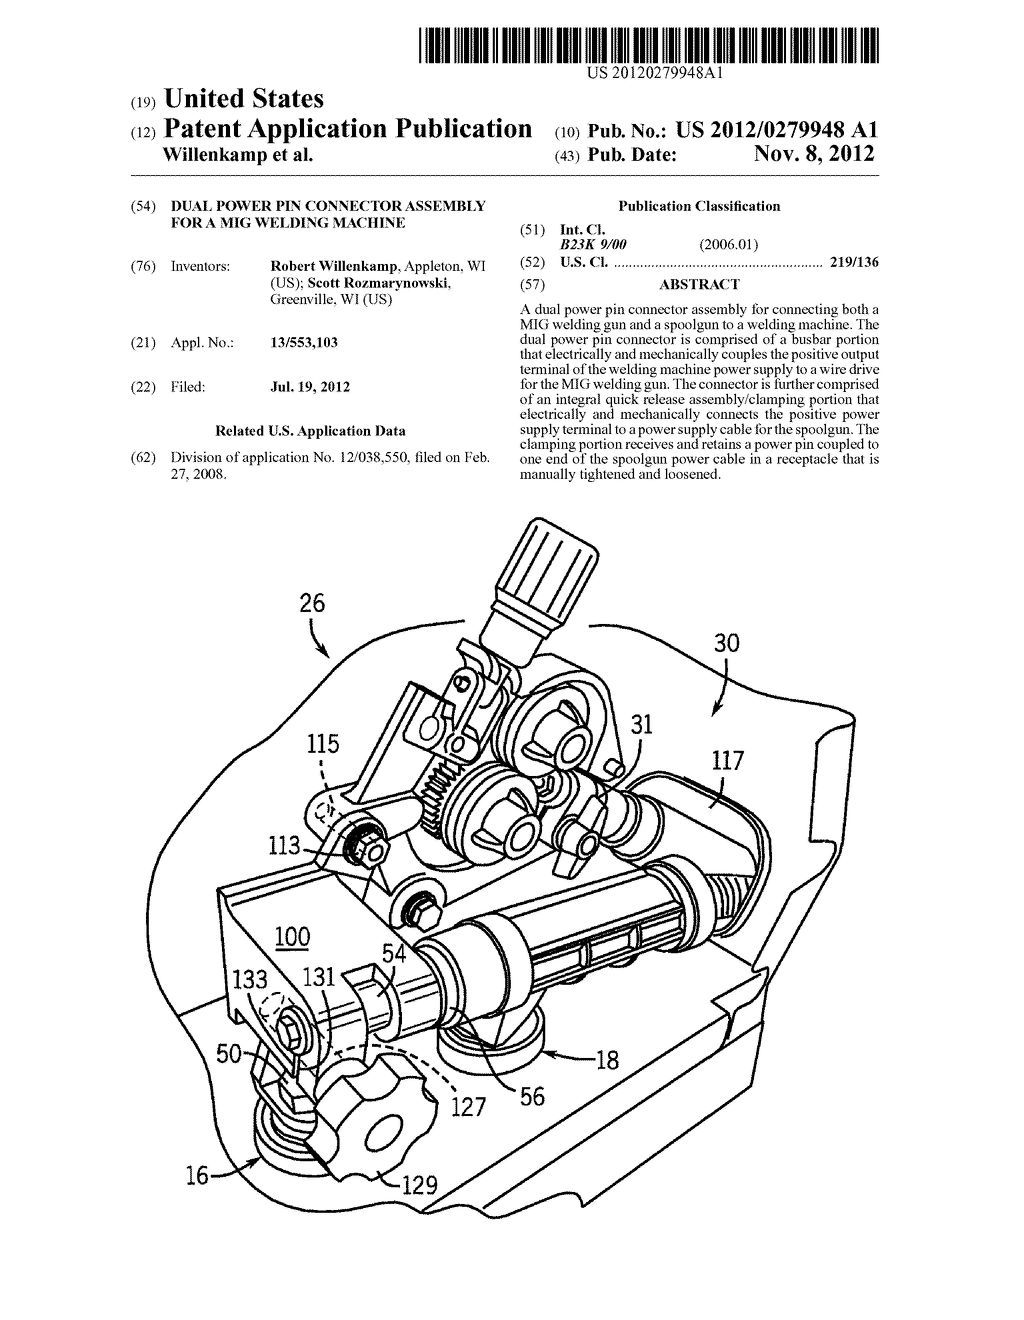 Dual Power Pin Connector Assembly For A MIG Welding Machine - diagram,  schematic, and image 01